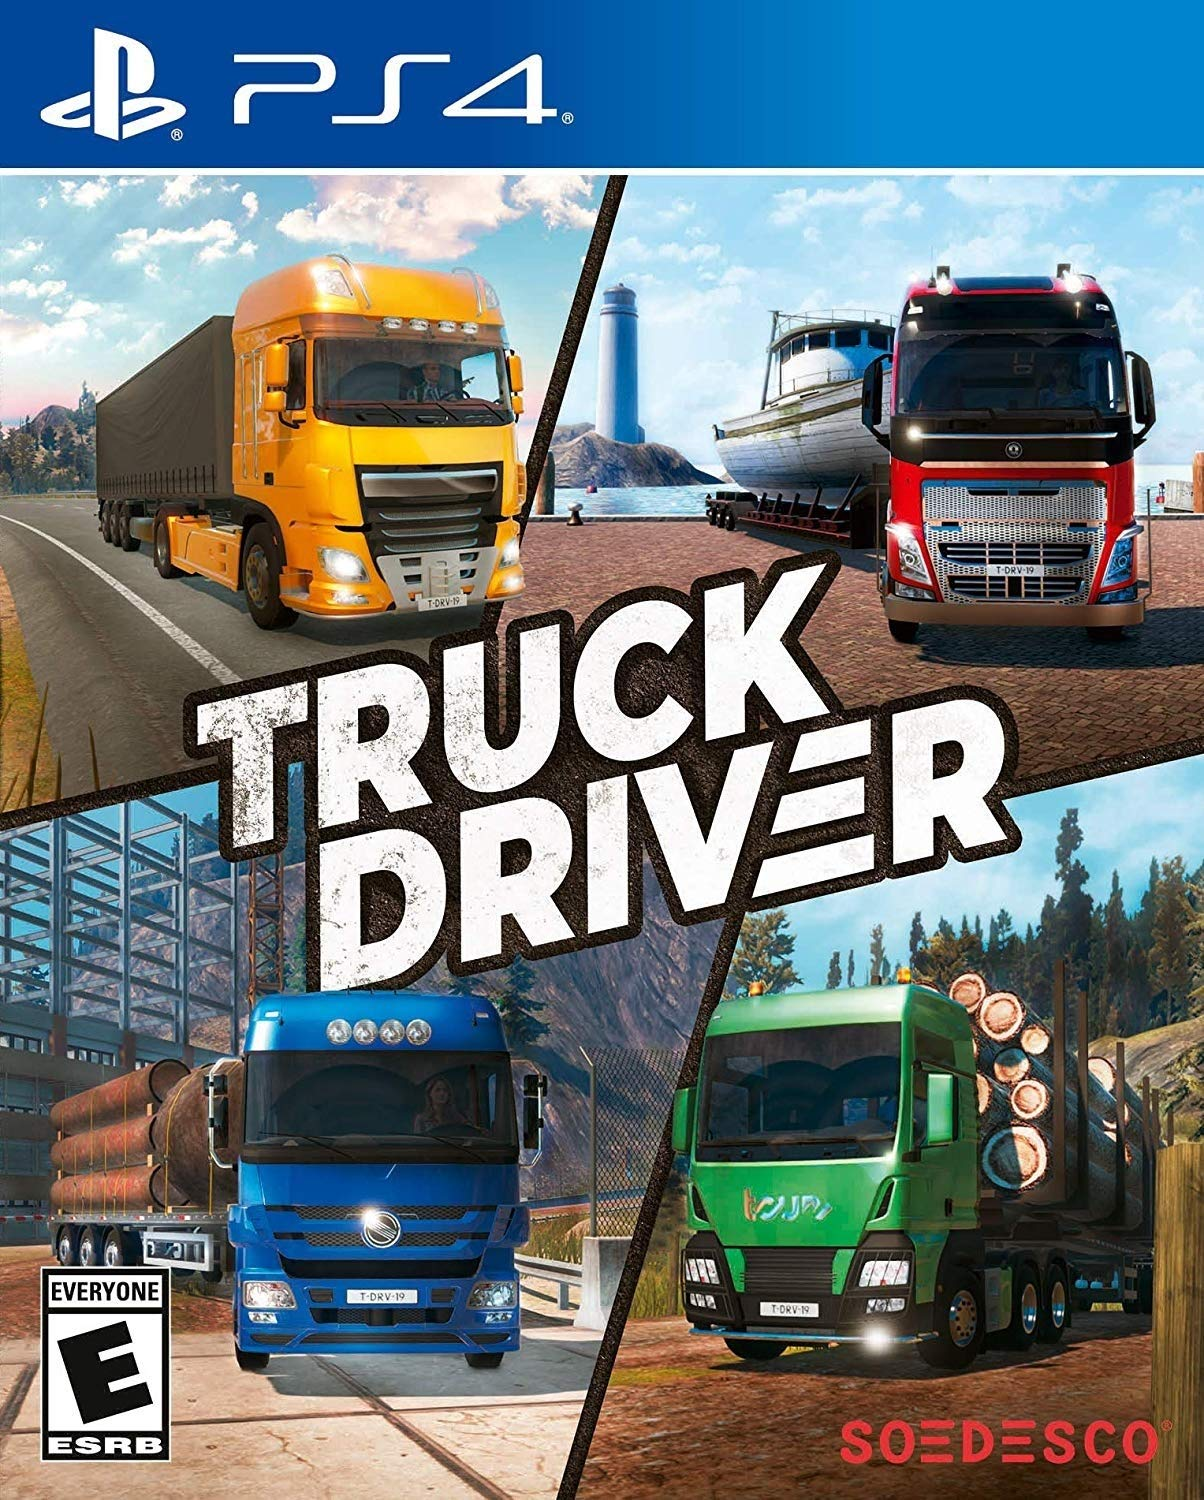 Truck Driver — PlayStation 4